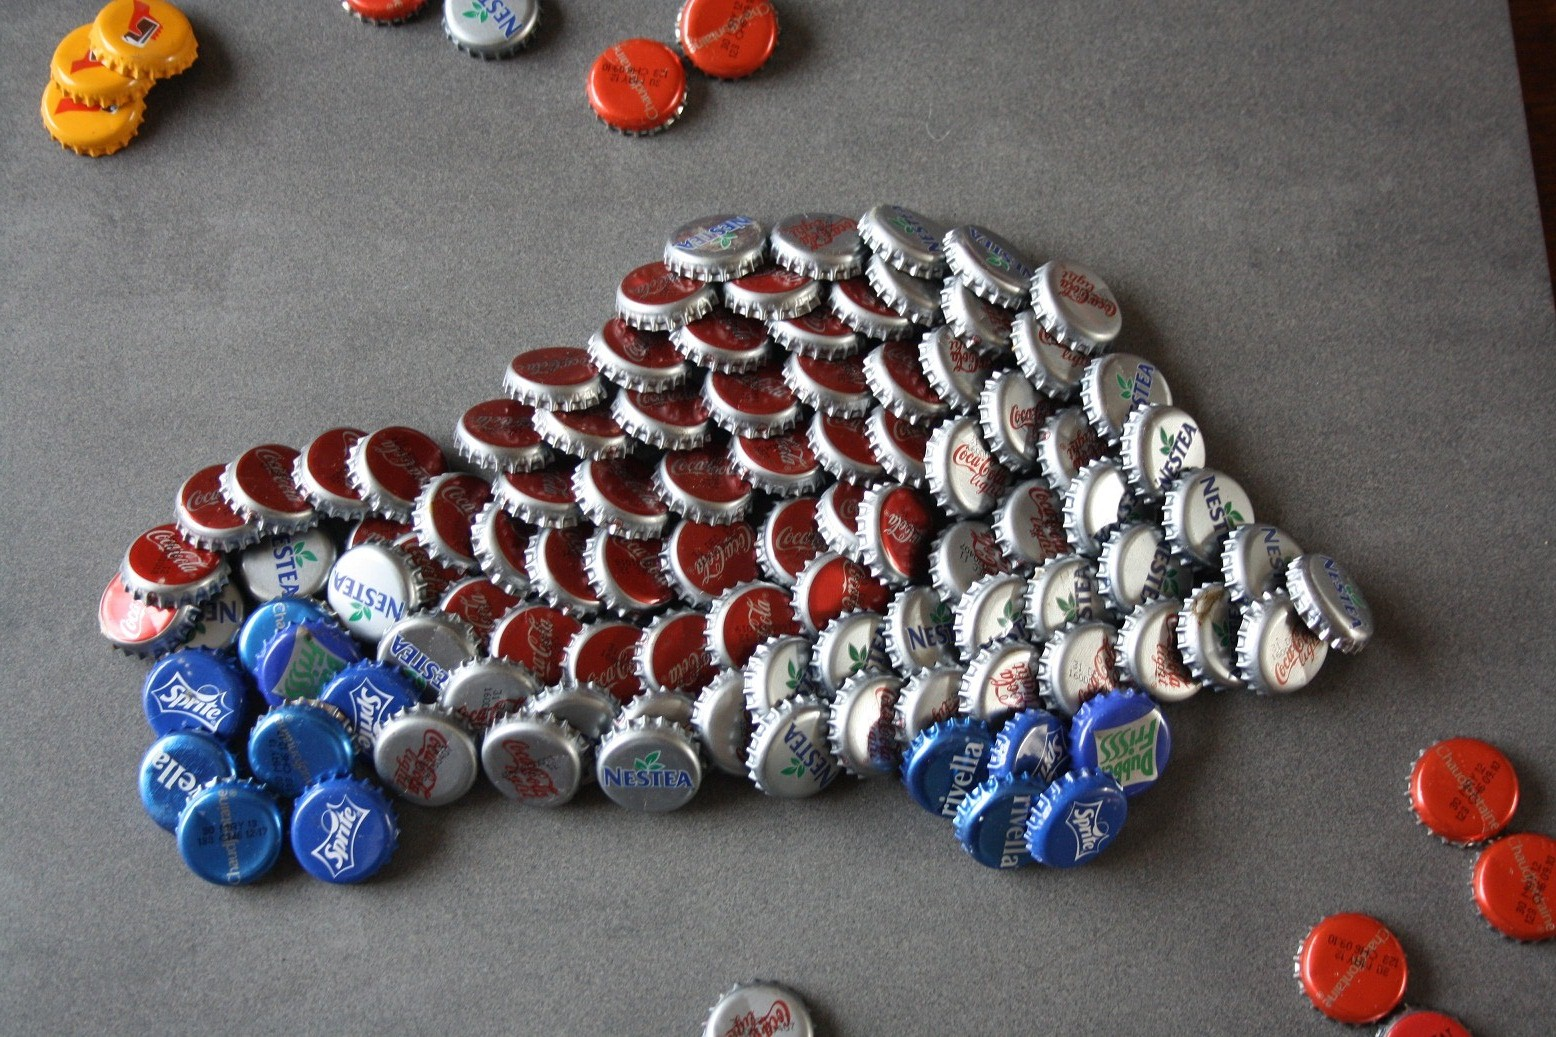 My crafts your crafts bottle cap artwork for Wholesale bottle caps for crafts